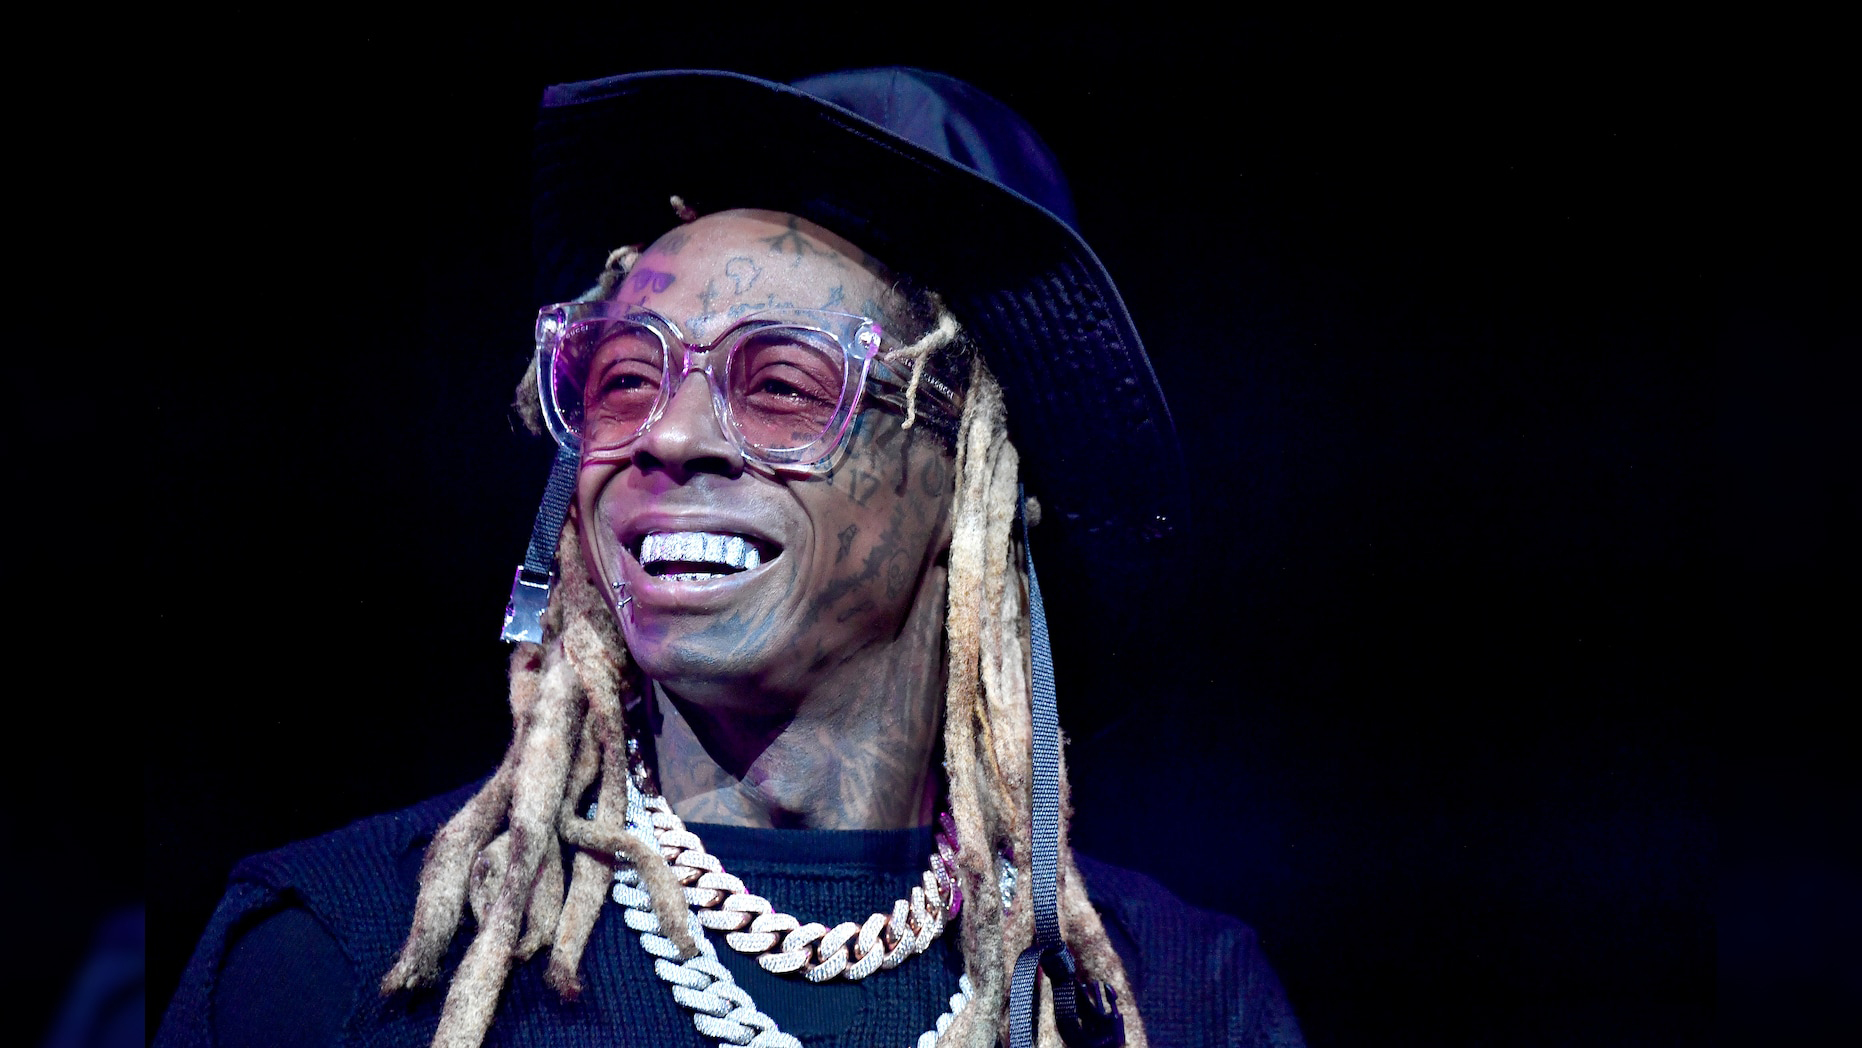 Lil Wayne thanks Trump on Twitter for pardon before leaving office - Fox News